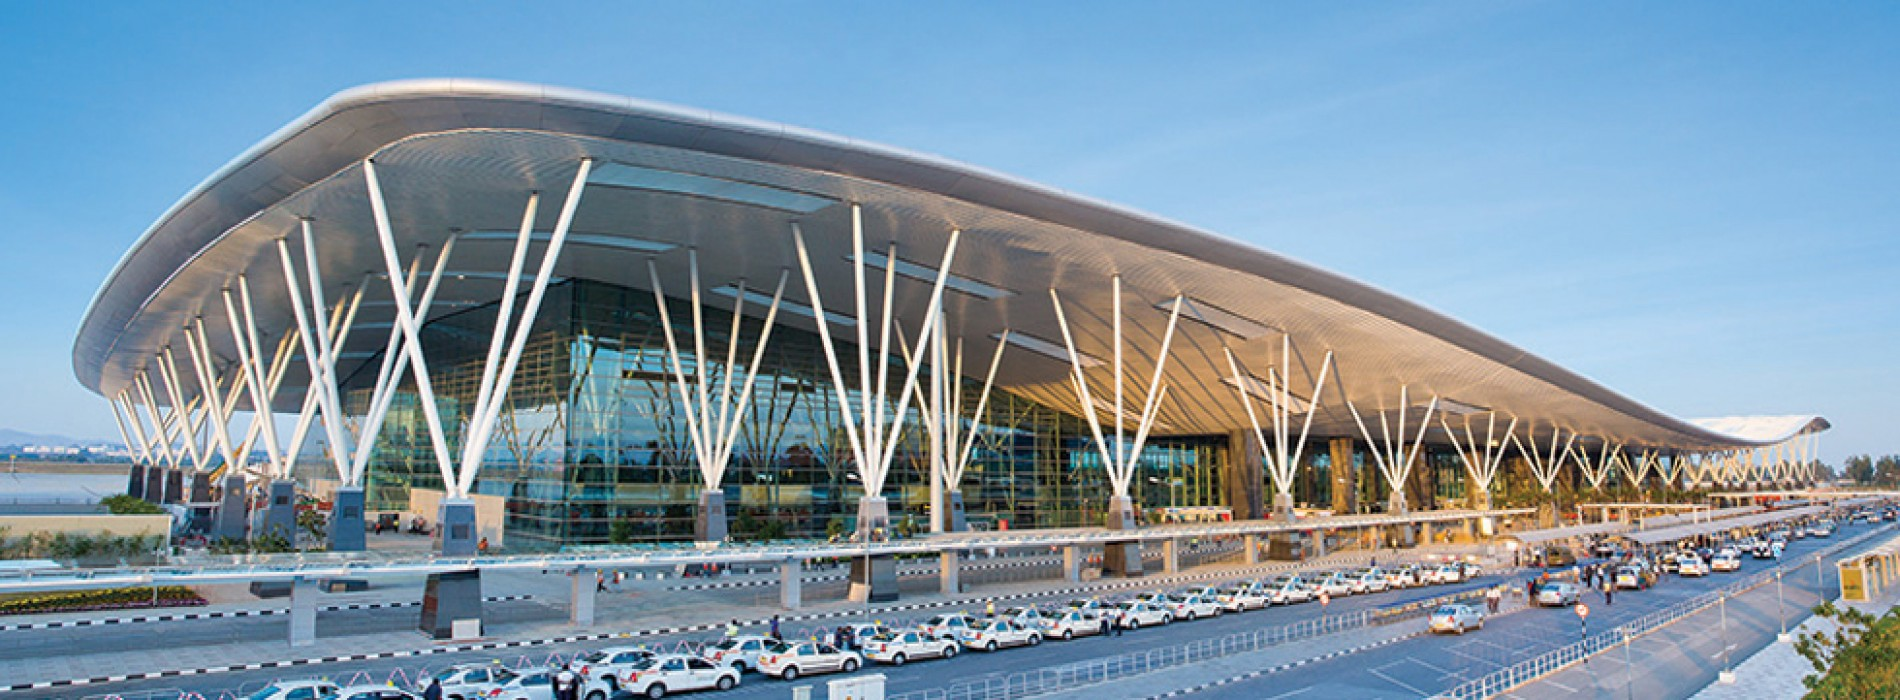 Bengaluru Airport will be closed for 6 hours every day between February 19 and April 30